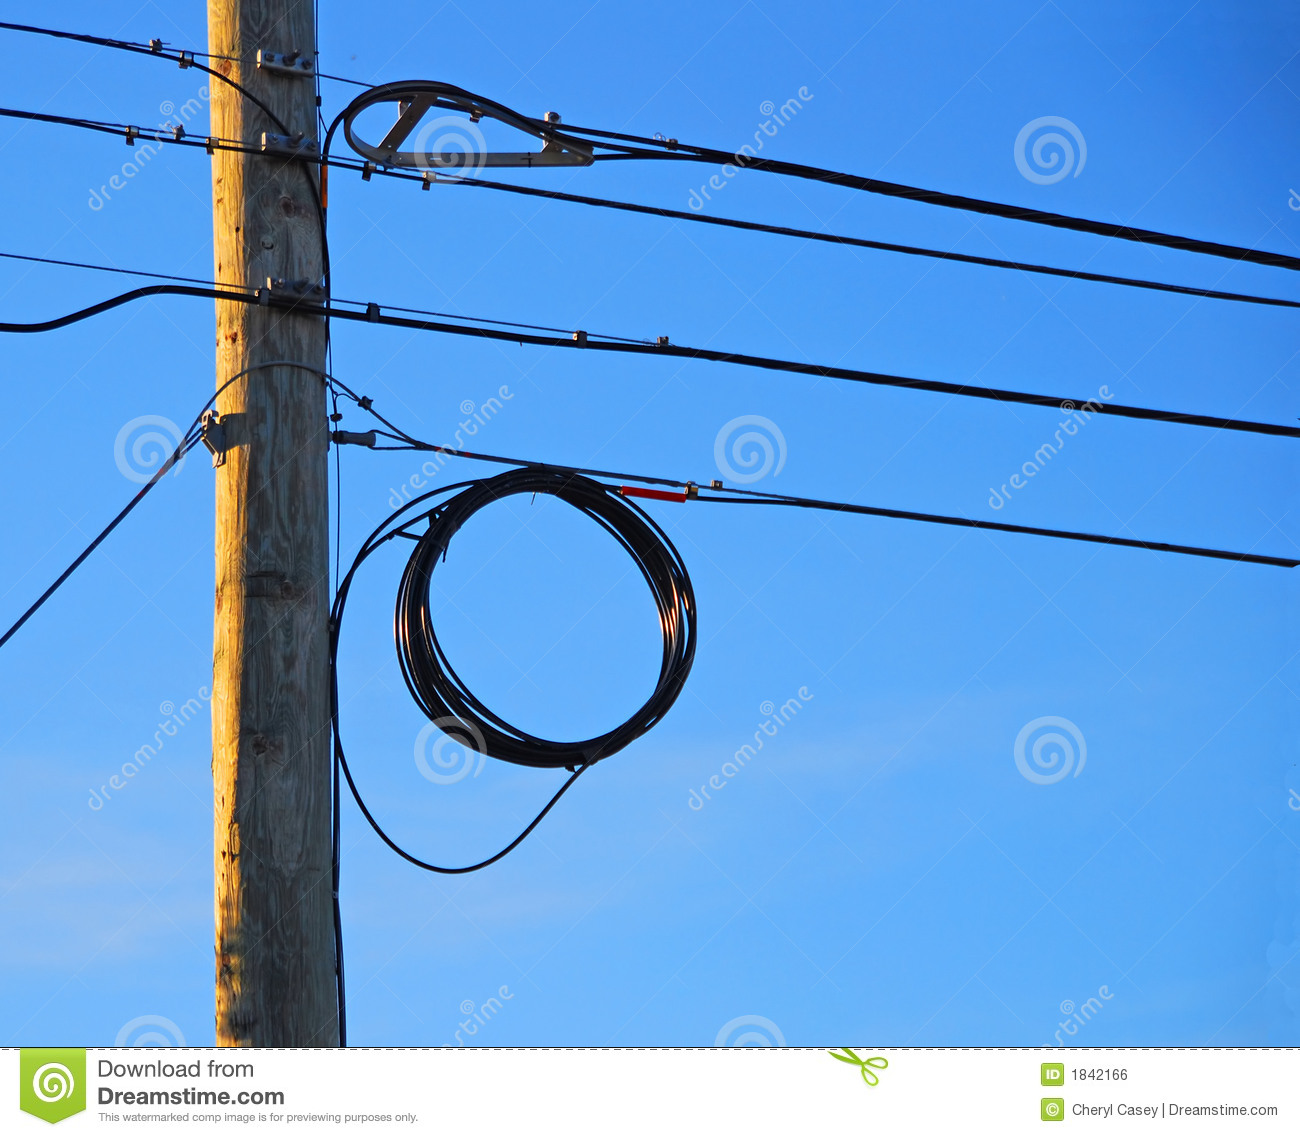 Telephone Pole And Wires Royalty Free Stock Image Image 1842166